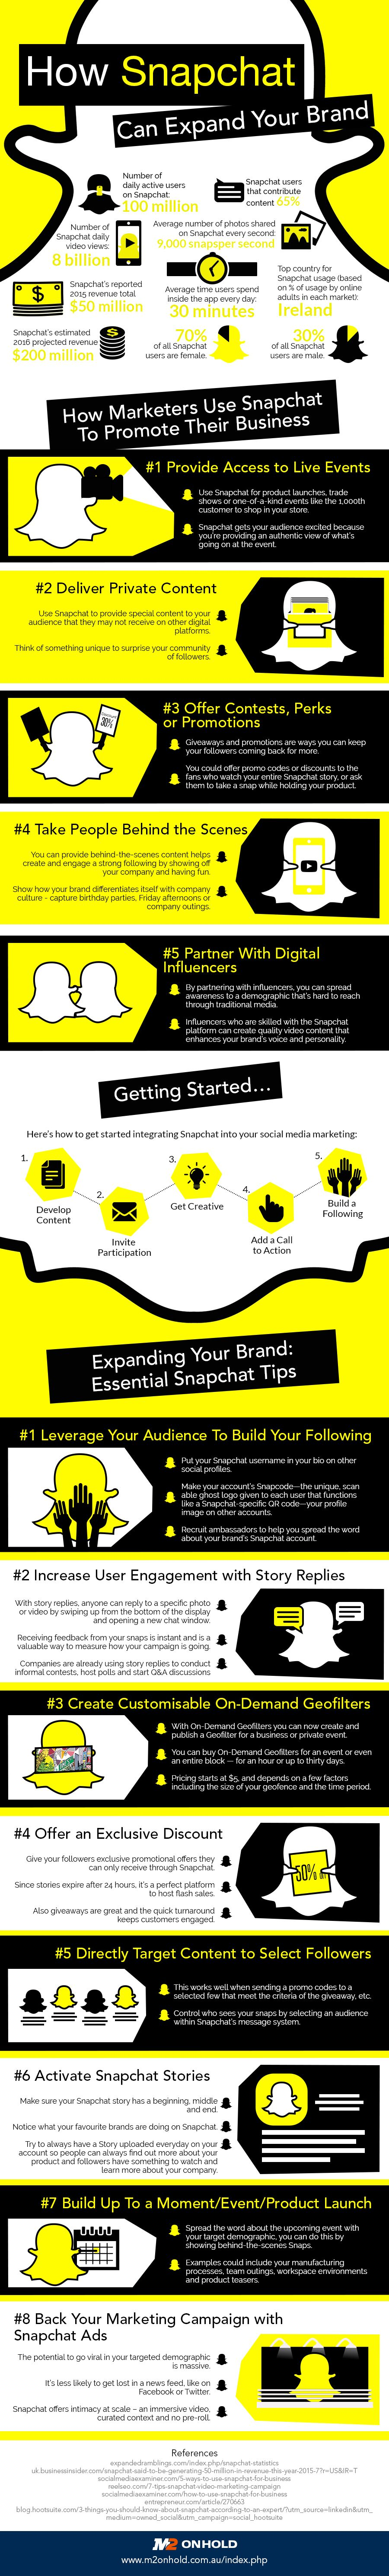 how snapchat can expand your brand infographic snapchat tips